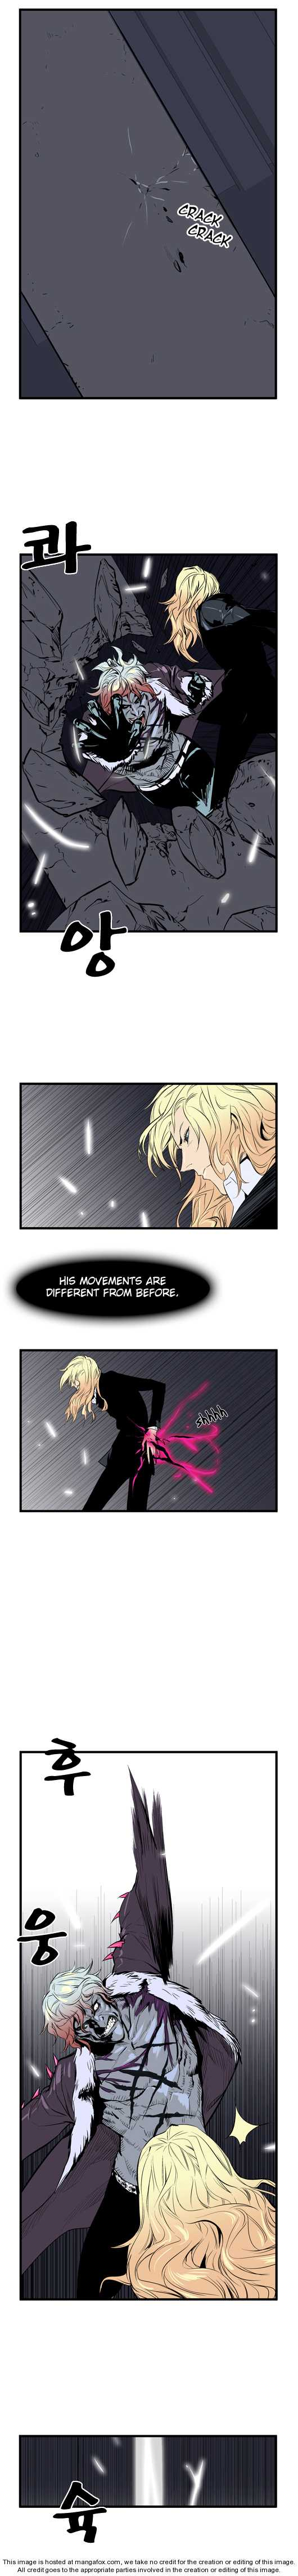 Noblesse 46 Page 2